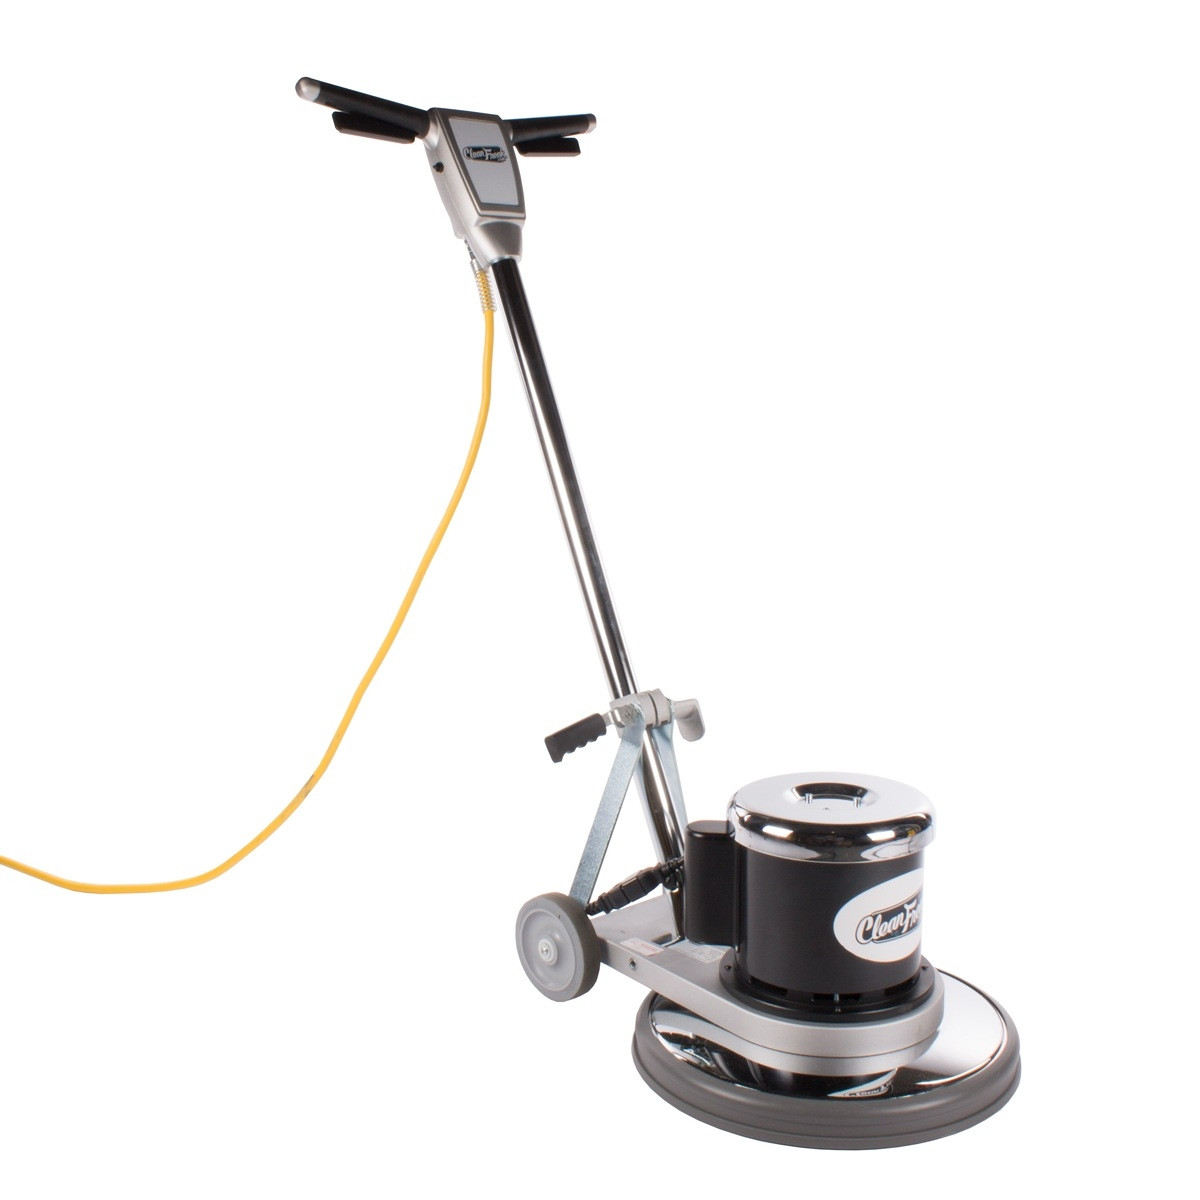 17 Quot Floor Buffer W Pad Driver Cleanfreak 174 1 5 Hp Model